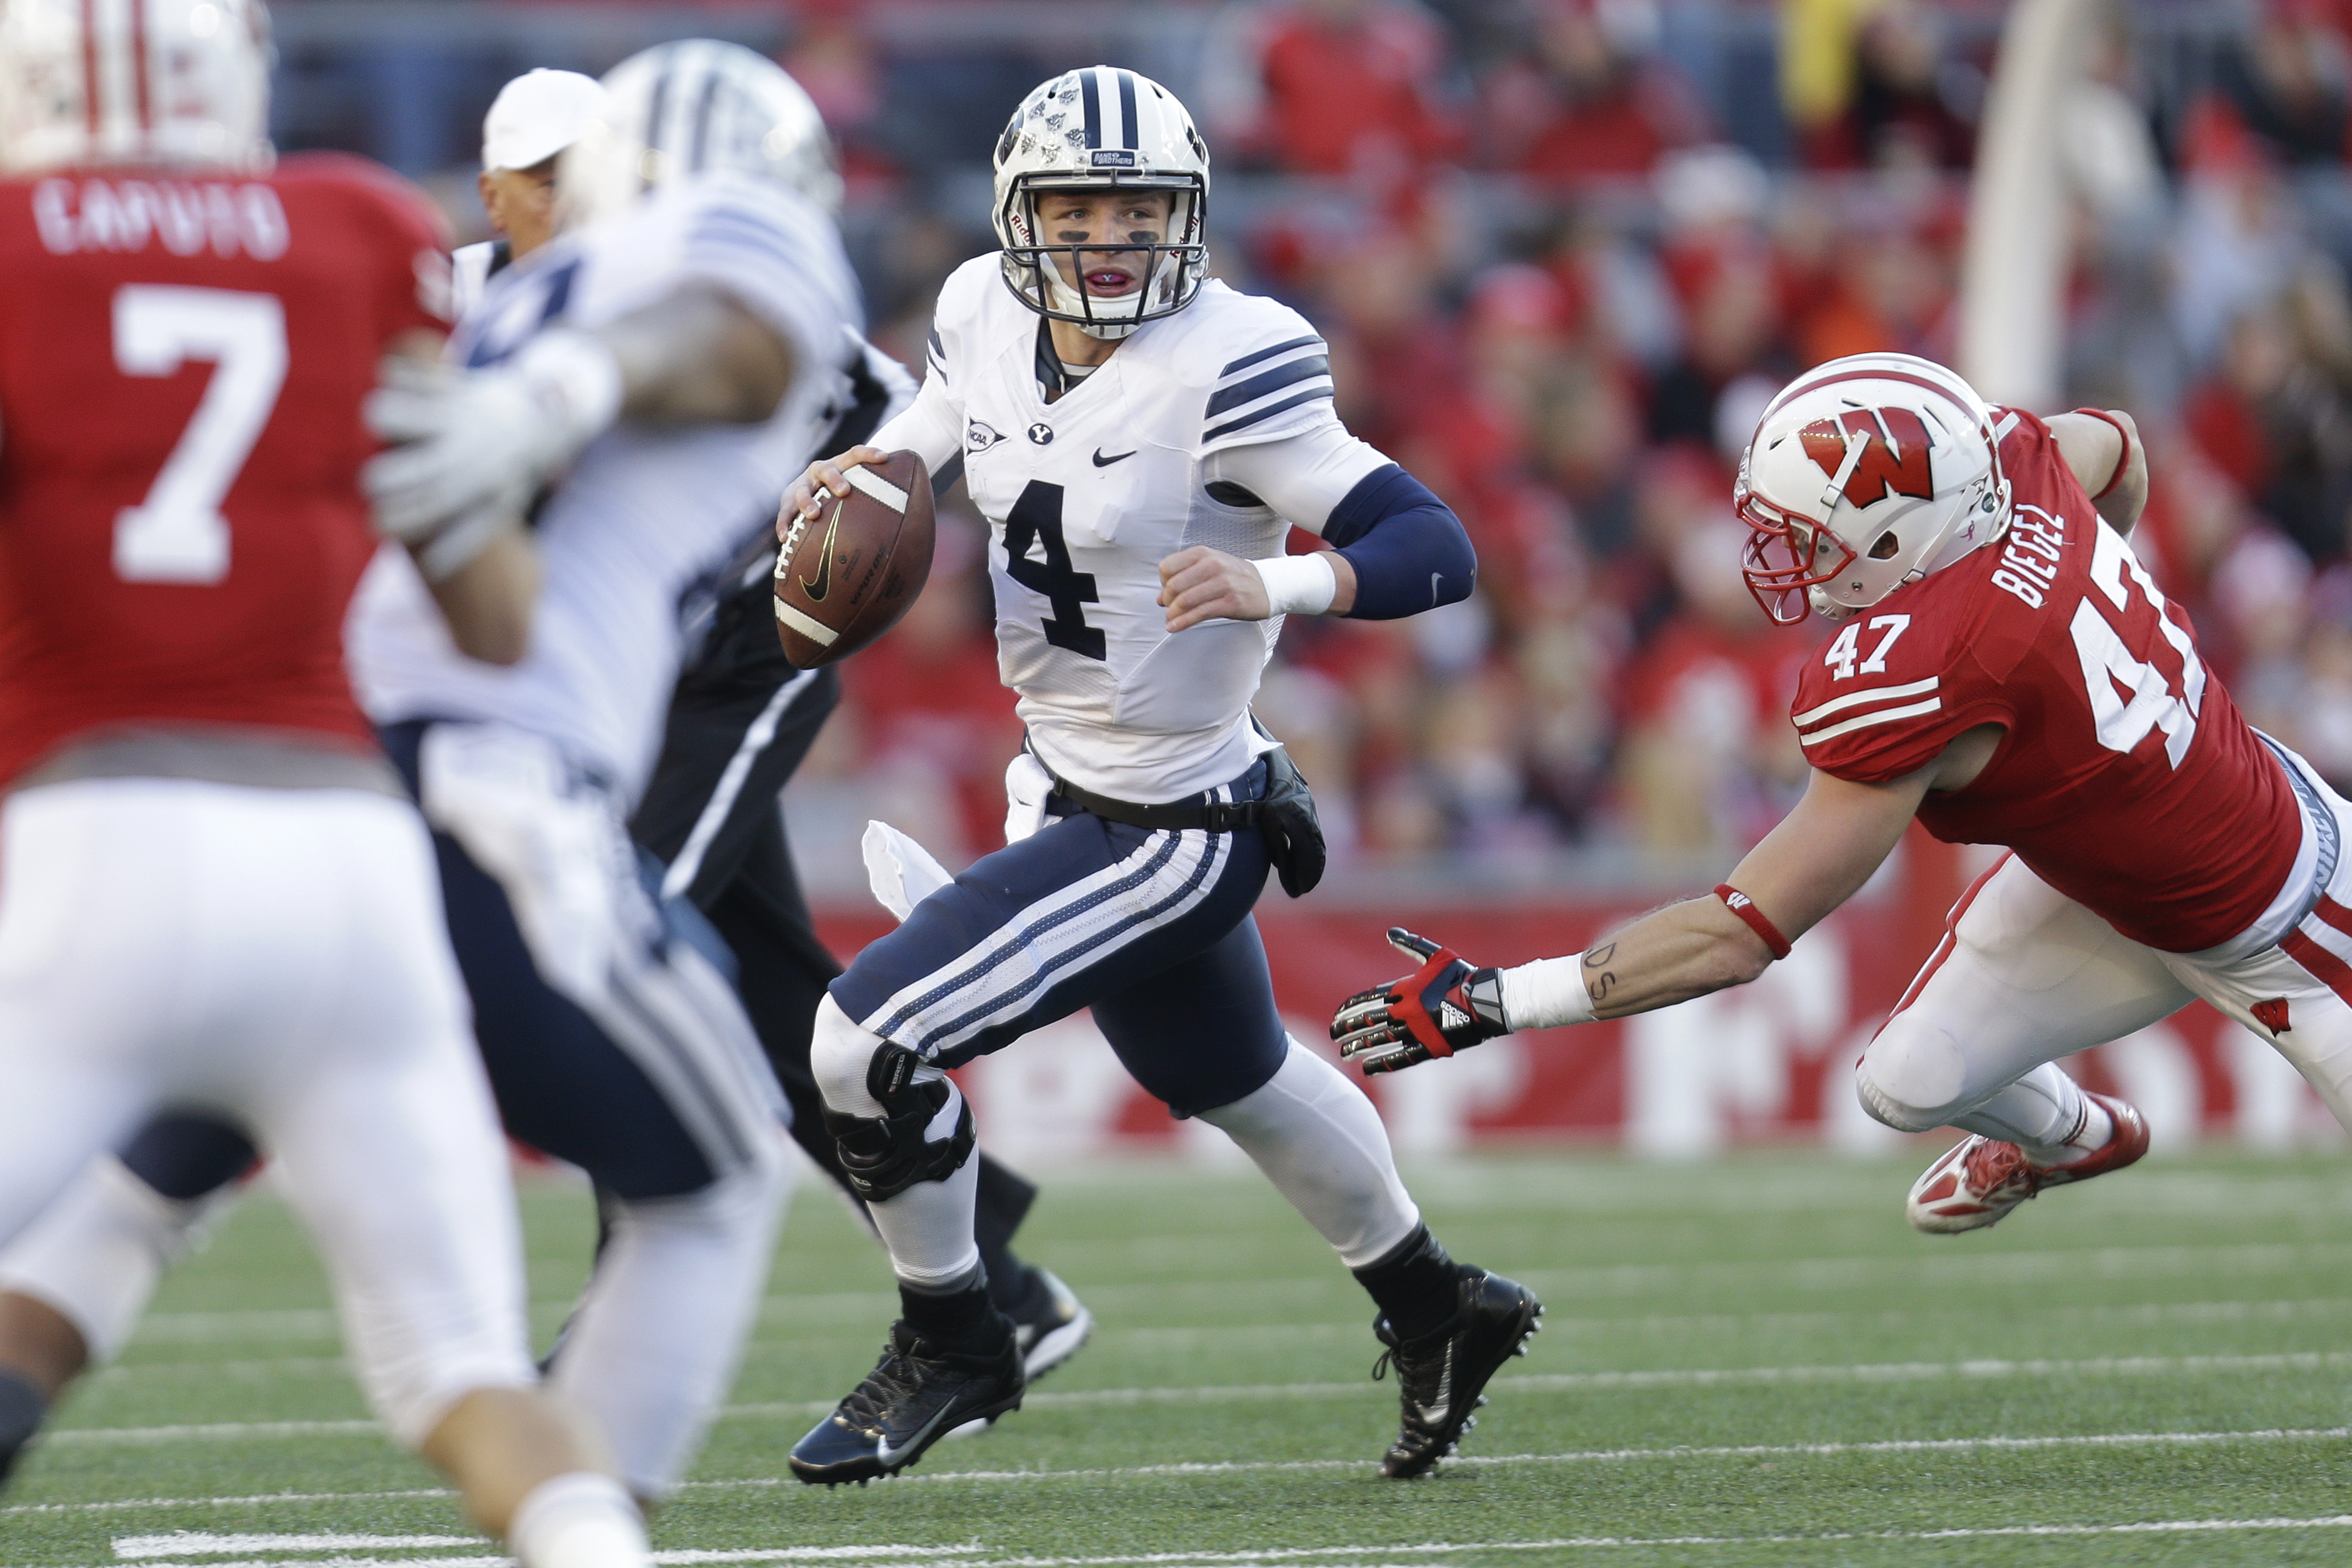 BYU football: The 10 best performances of the Independence era